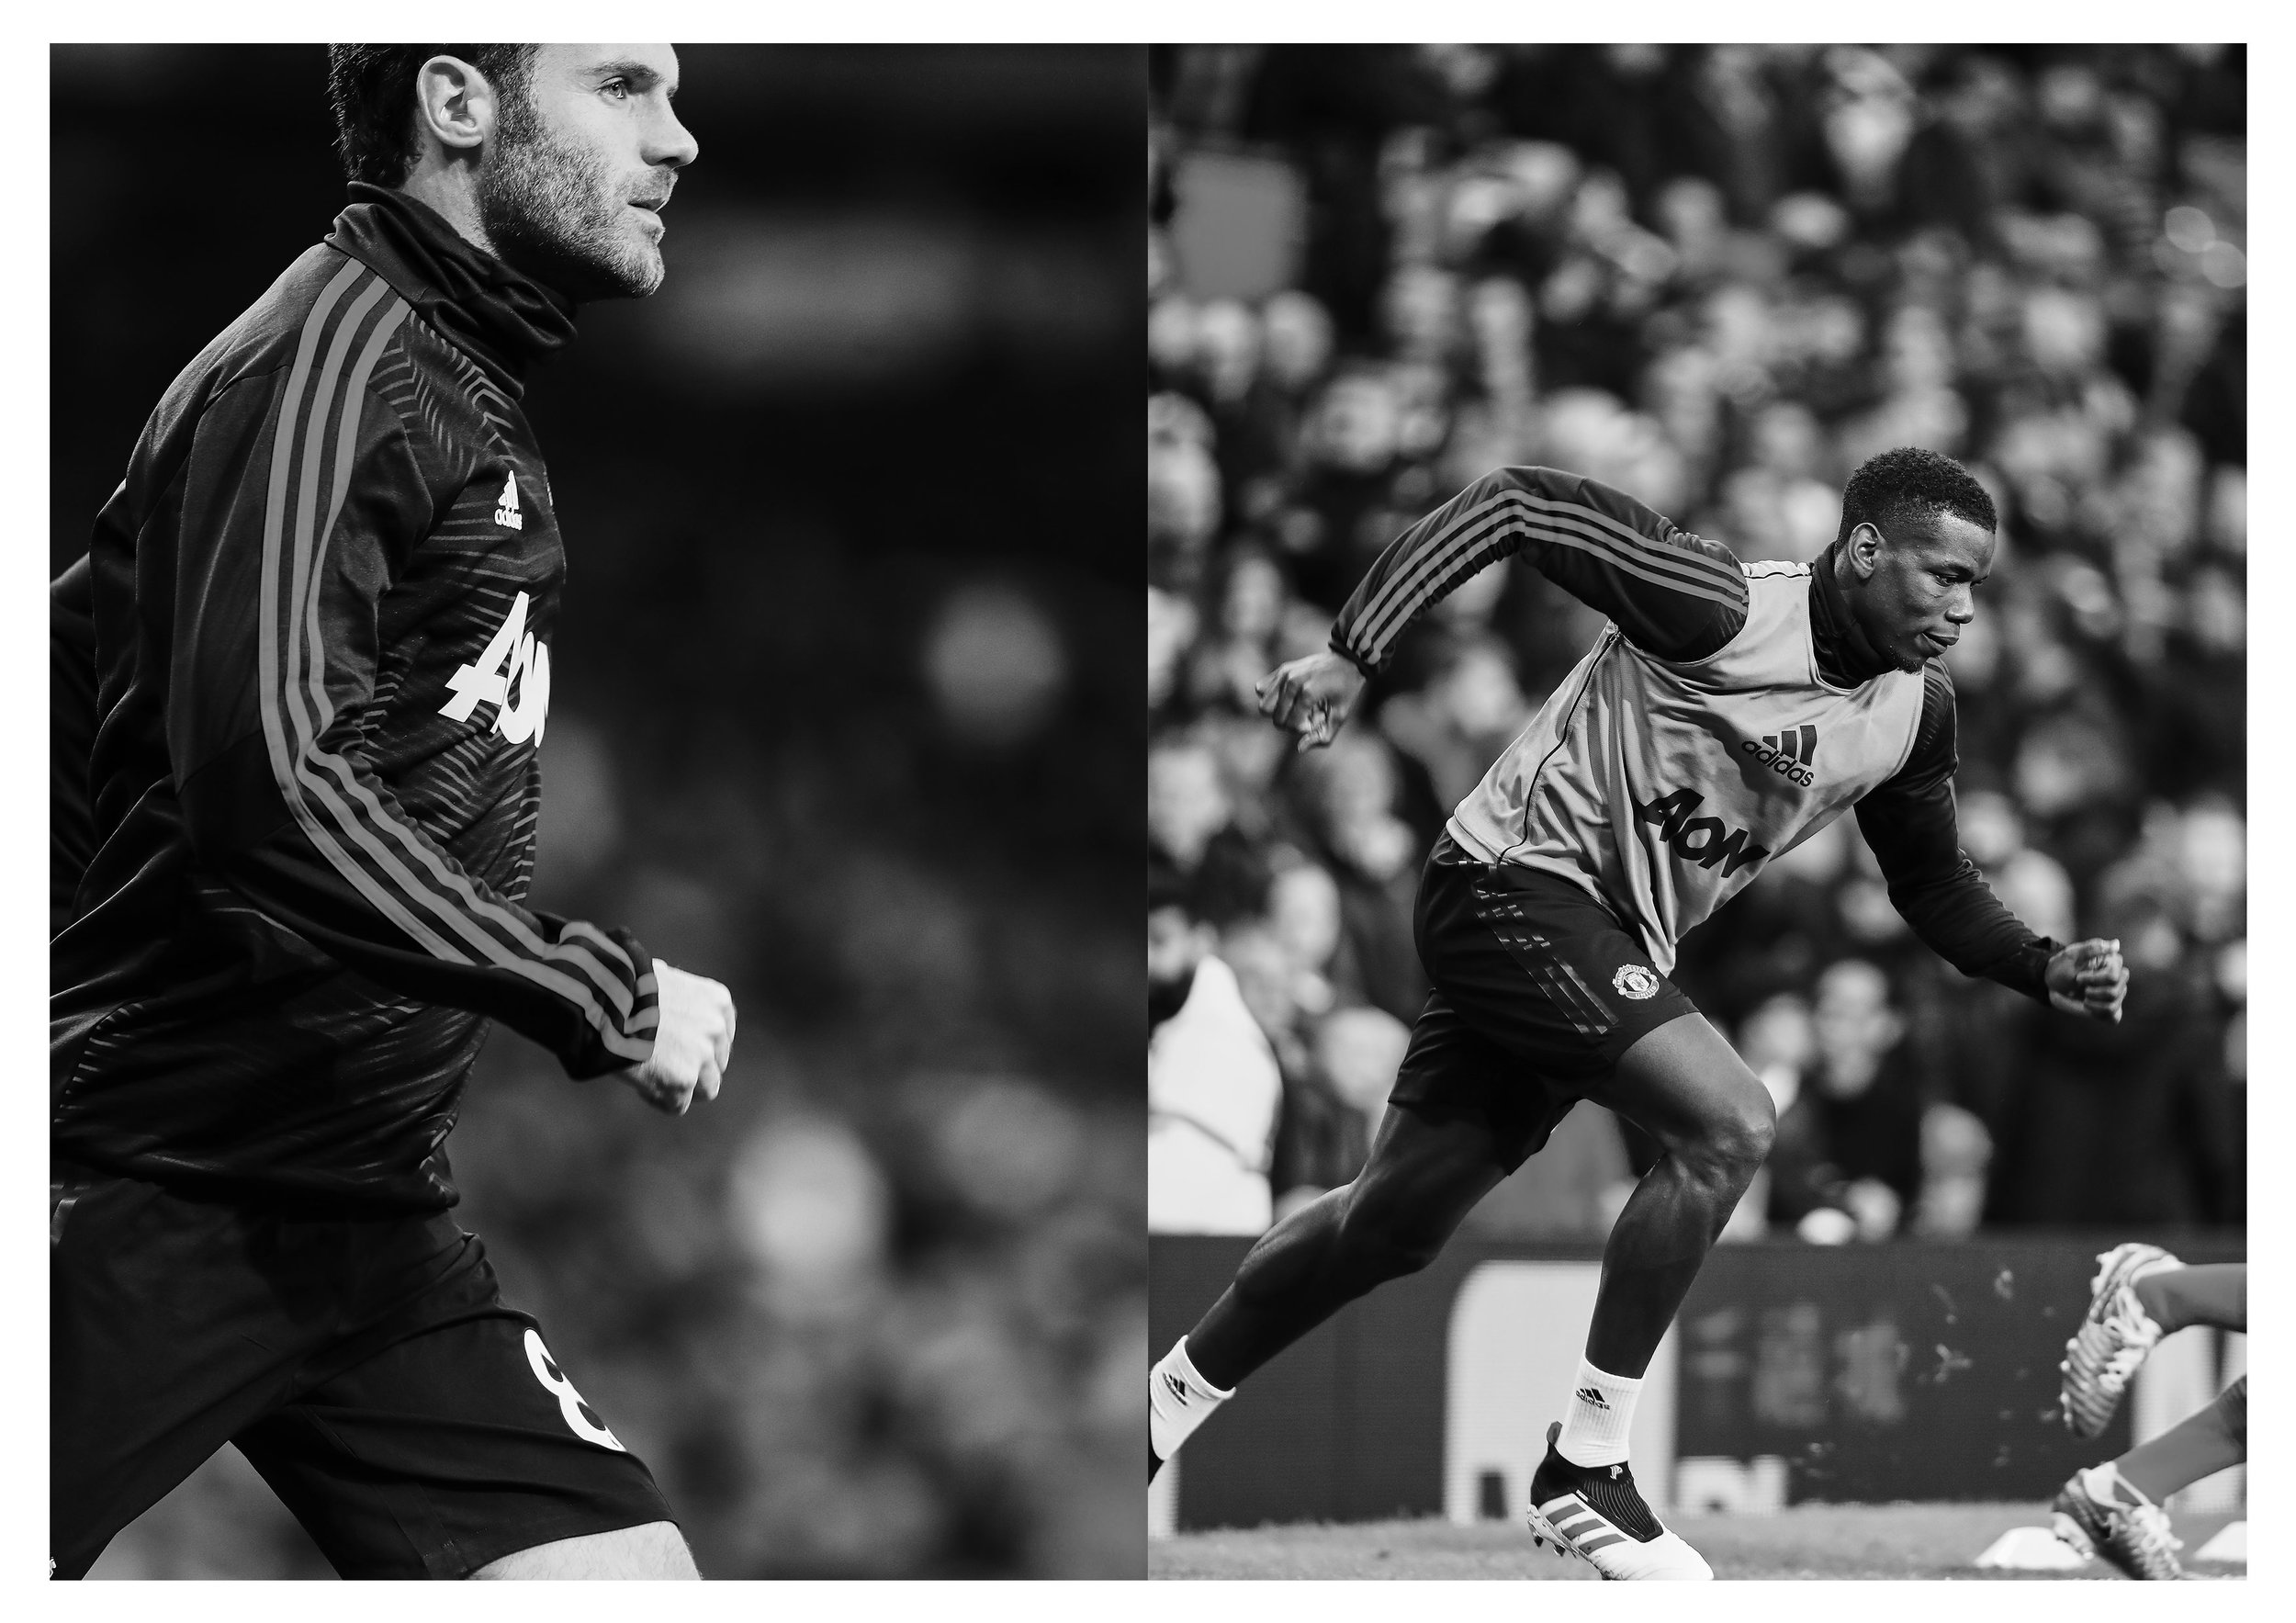 Juan Mata & Paul Pogba during the Manchester Derby. Shot for Soccerbible